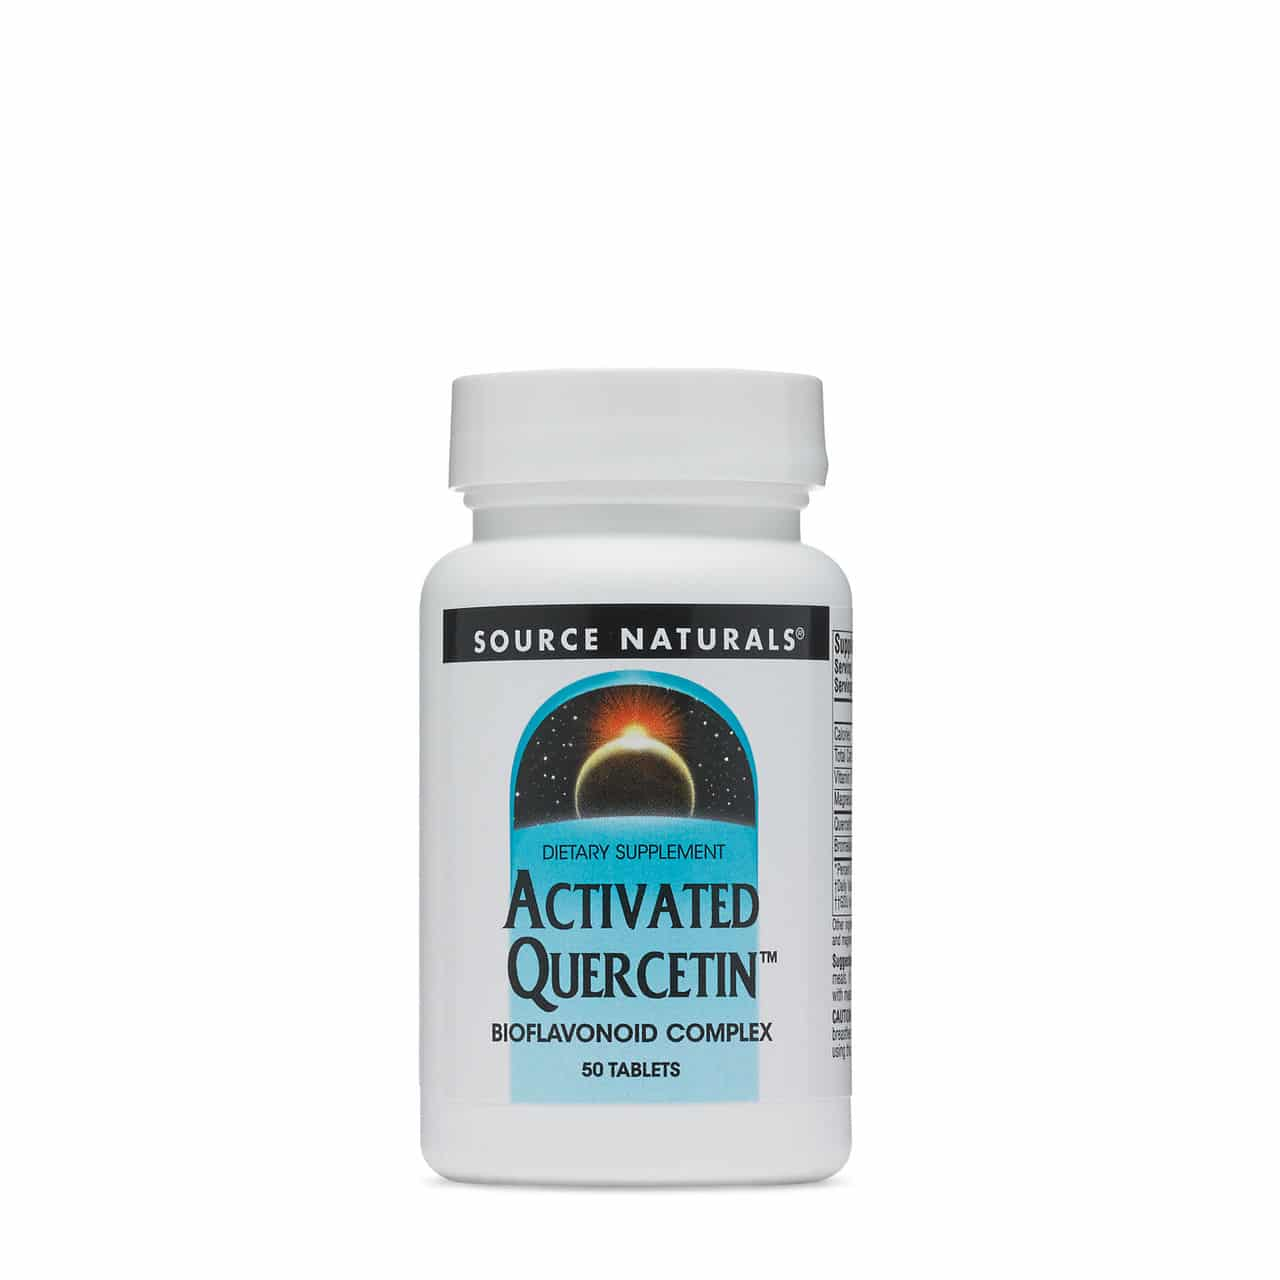 Activated Quercetin Source Naturals